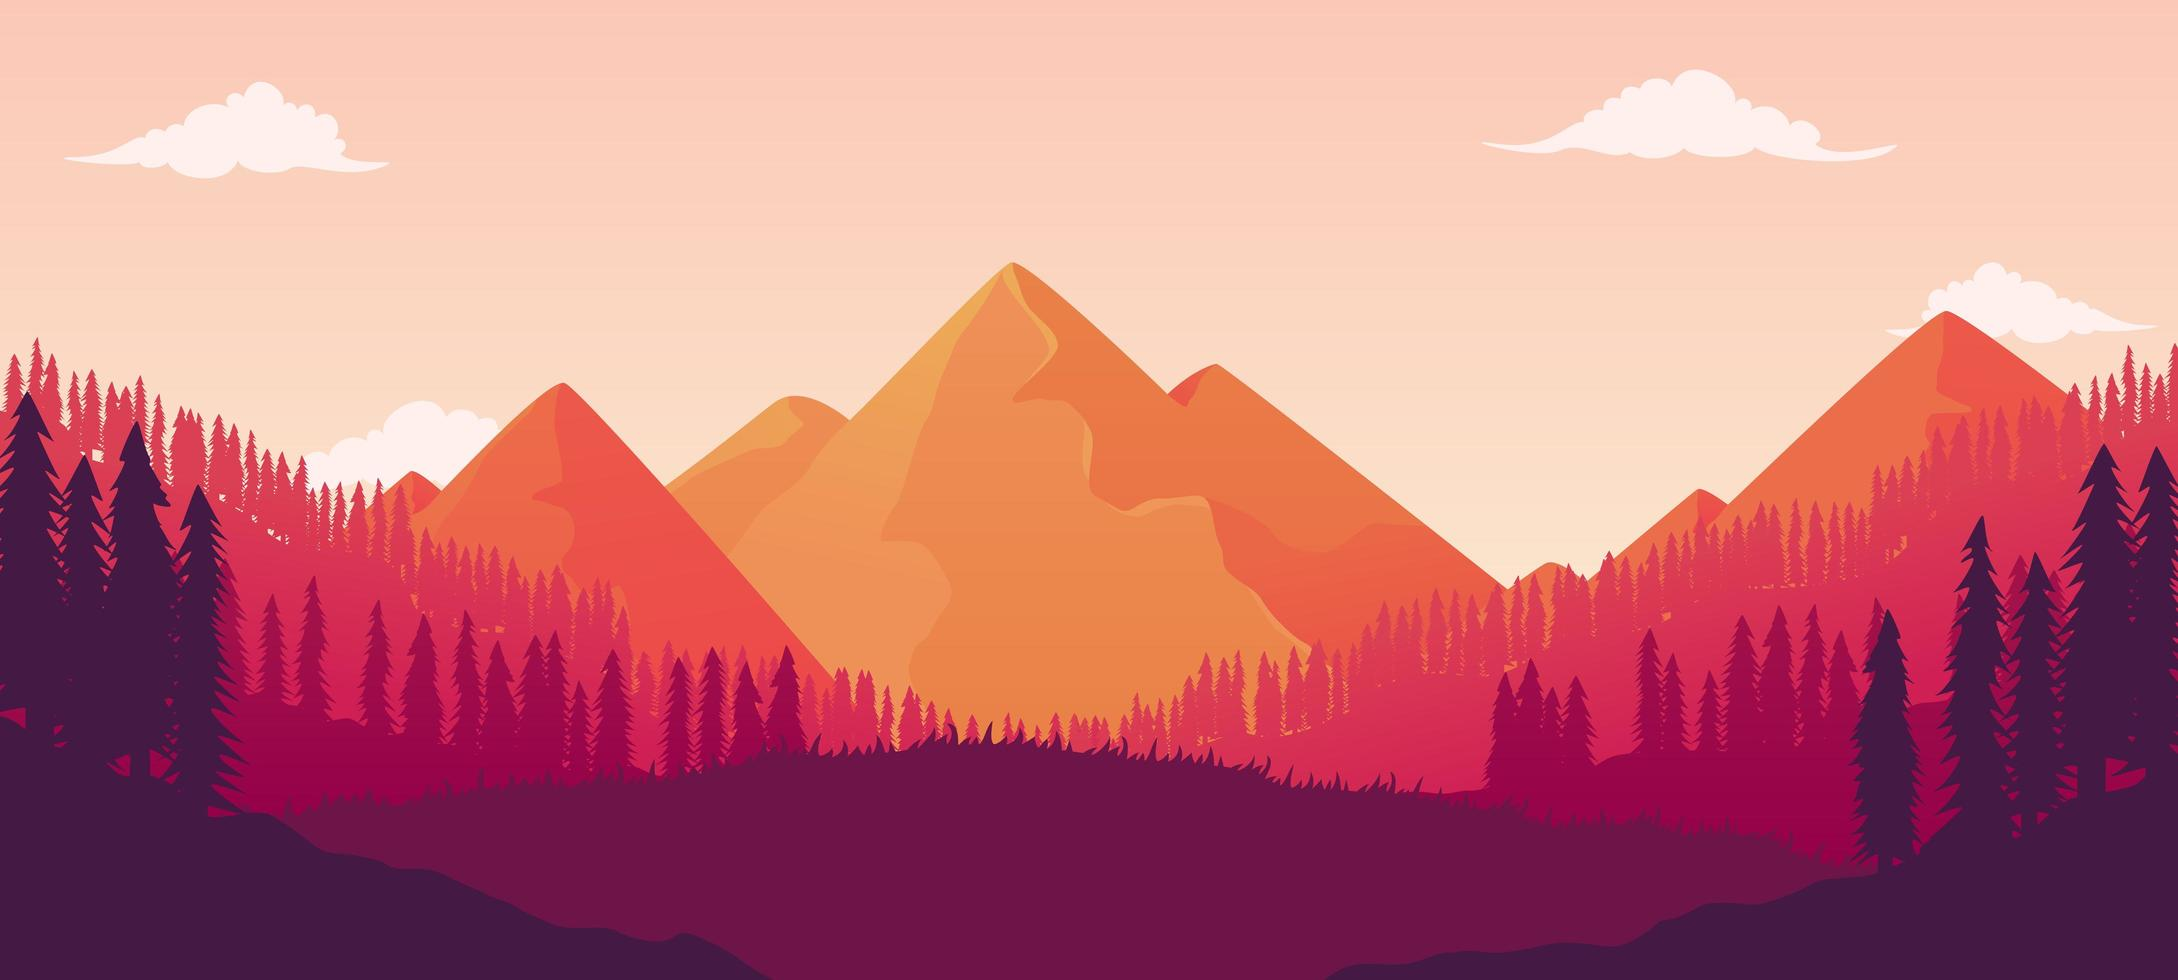 Beautiful Landscape Pine Forest With Mesmerizing Mountain Views vector